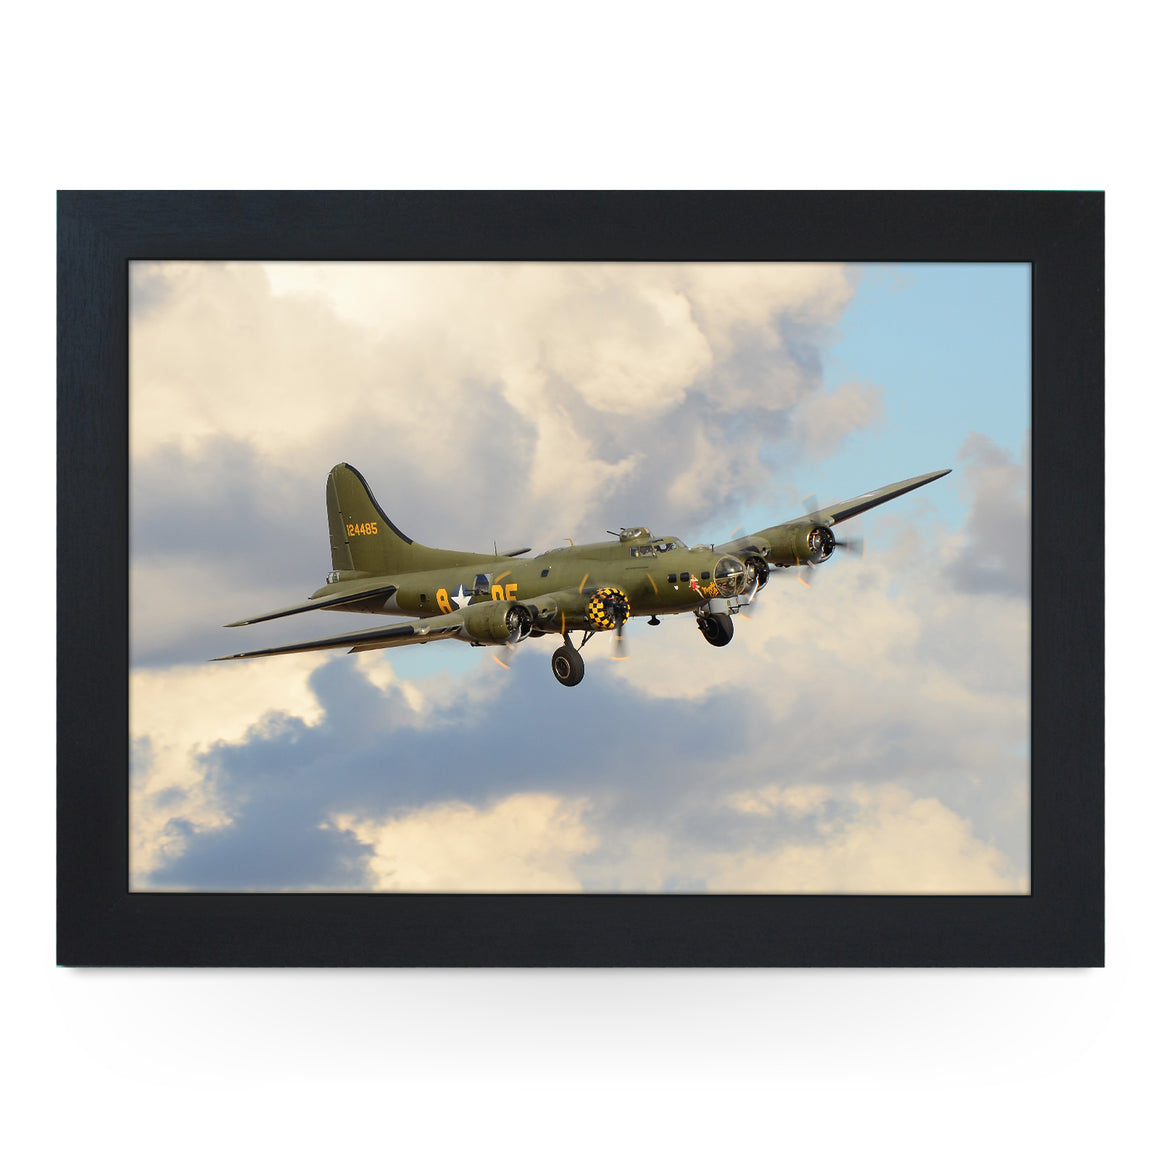 Boeing B-17 Flying Fortress Plane Lap Tray - AD14682